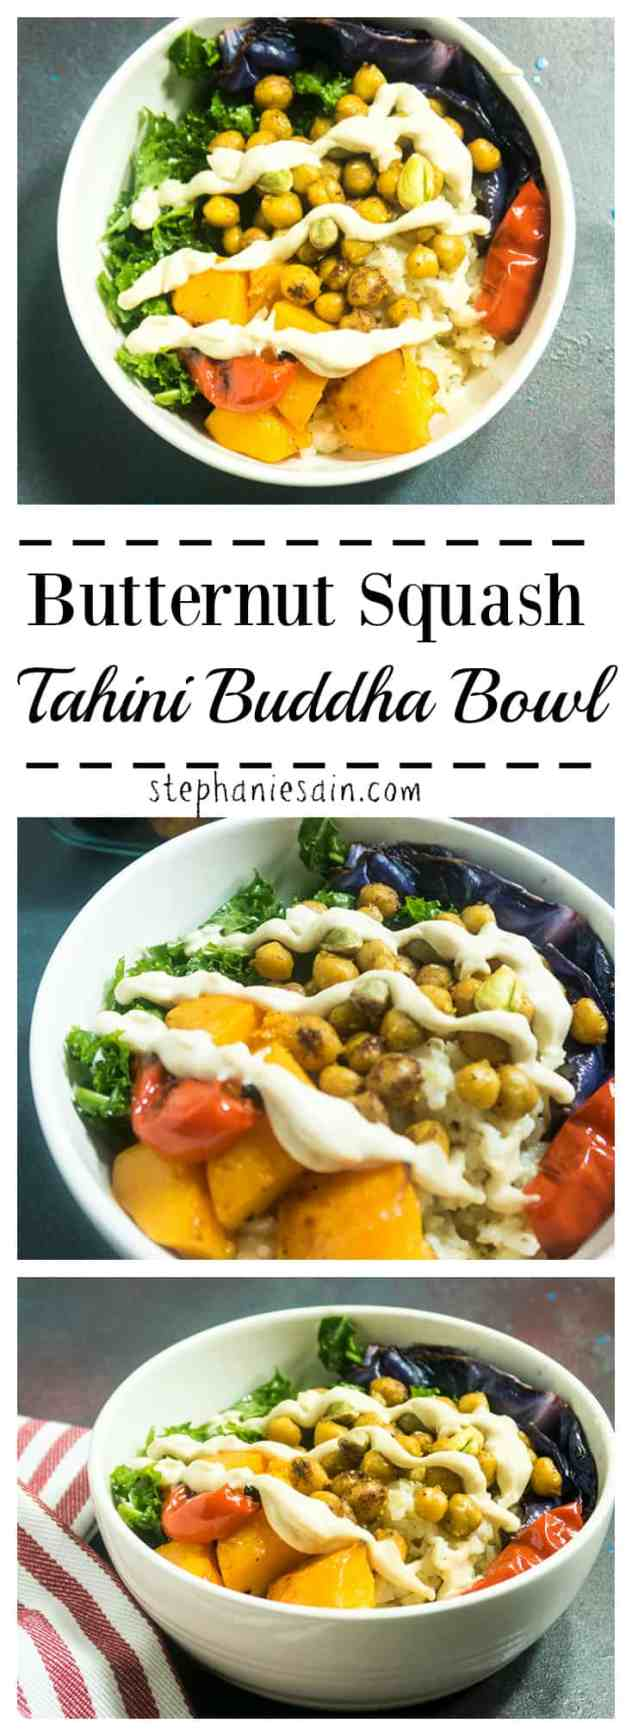 Butternut Squash Tahini Buddha Bowl is loaded with roasted veggies, brown rice, kale and toasted chickpeas. A great healthy one bowl dinner option. Vegan & Gluten Free.